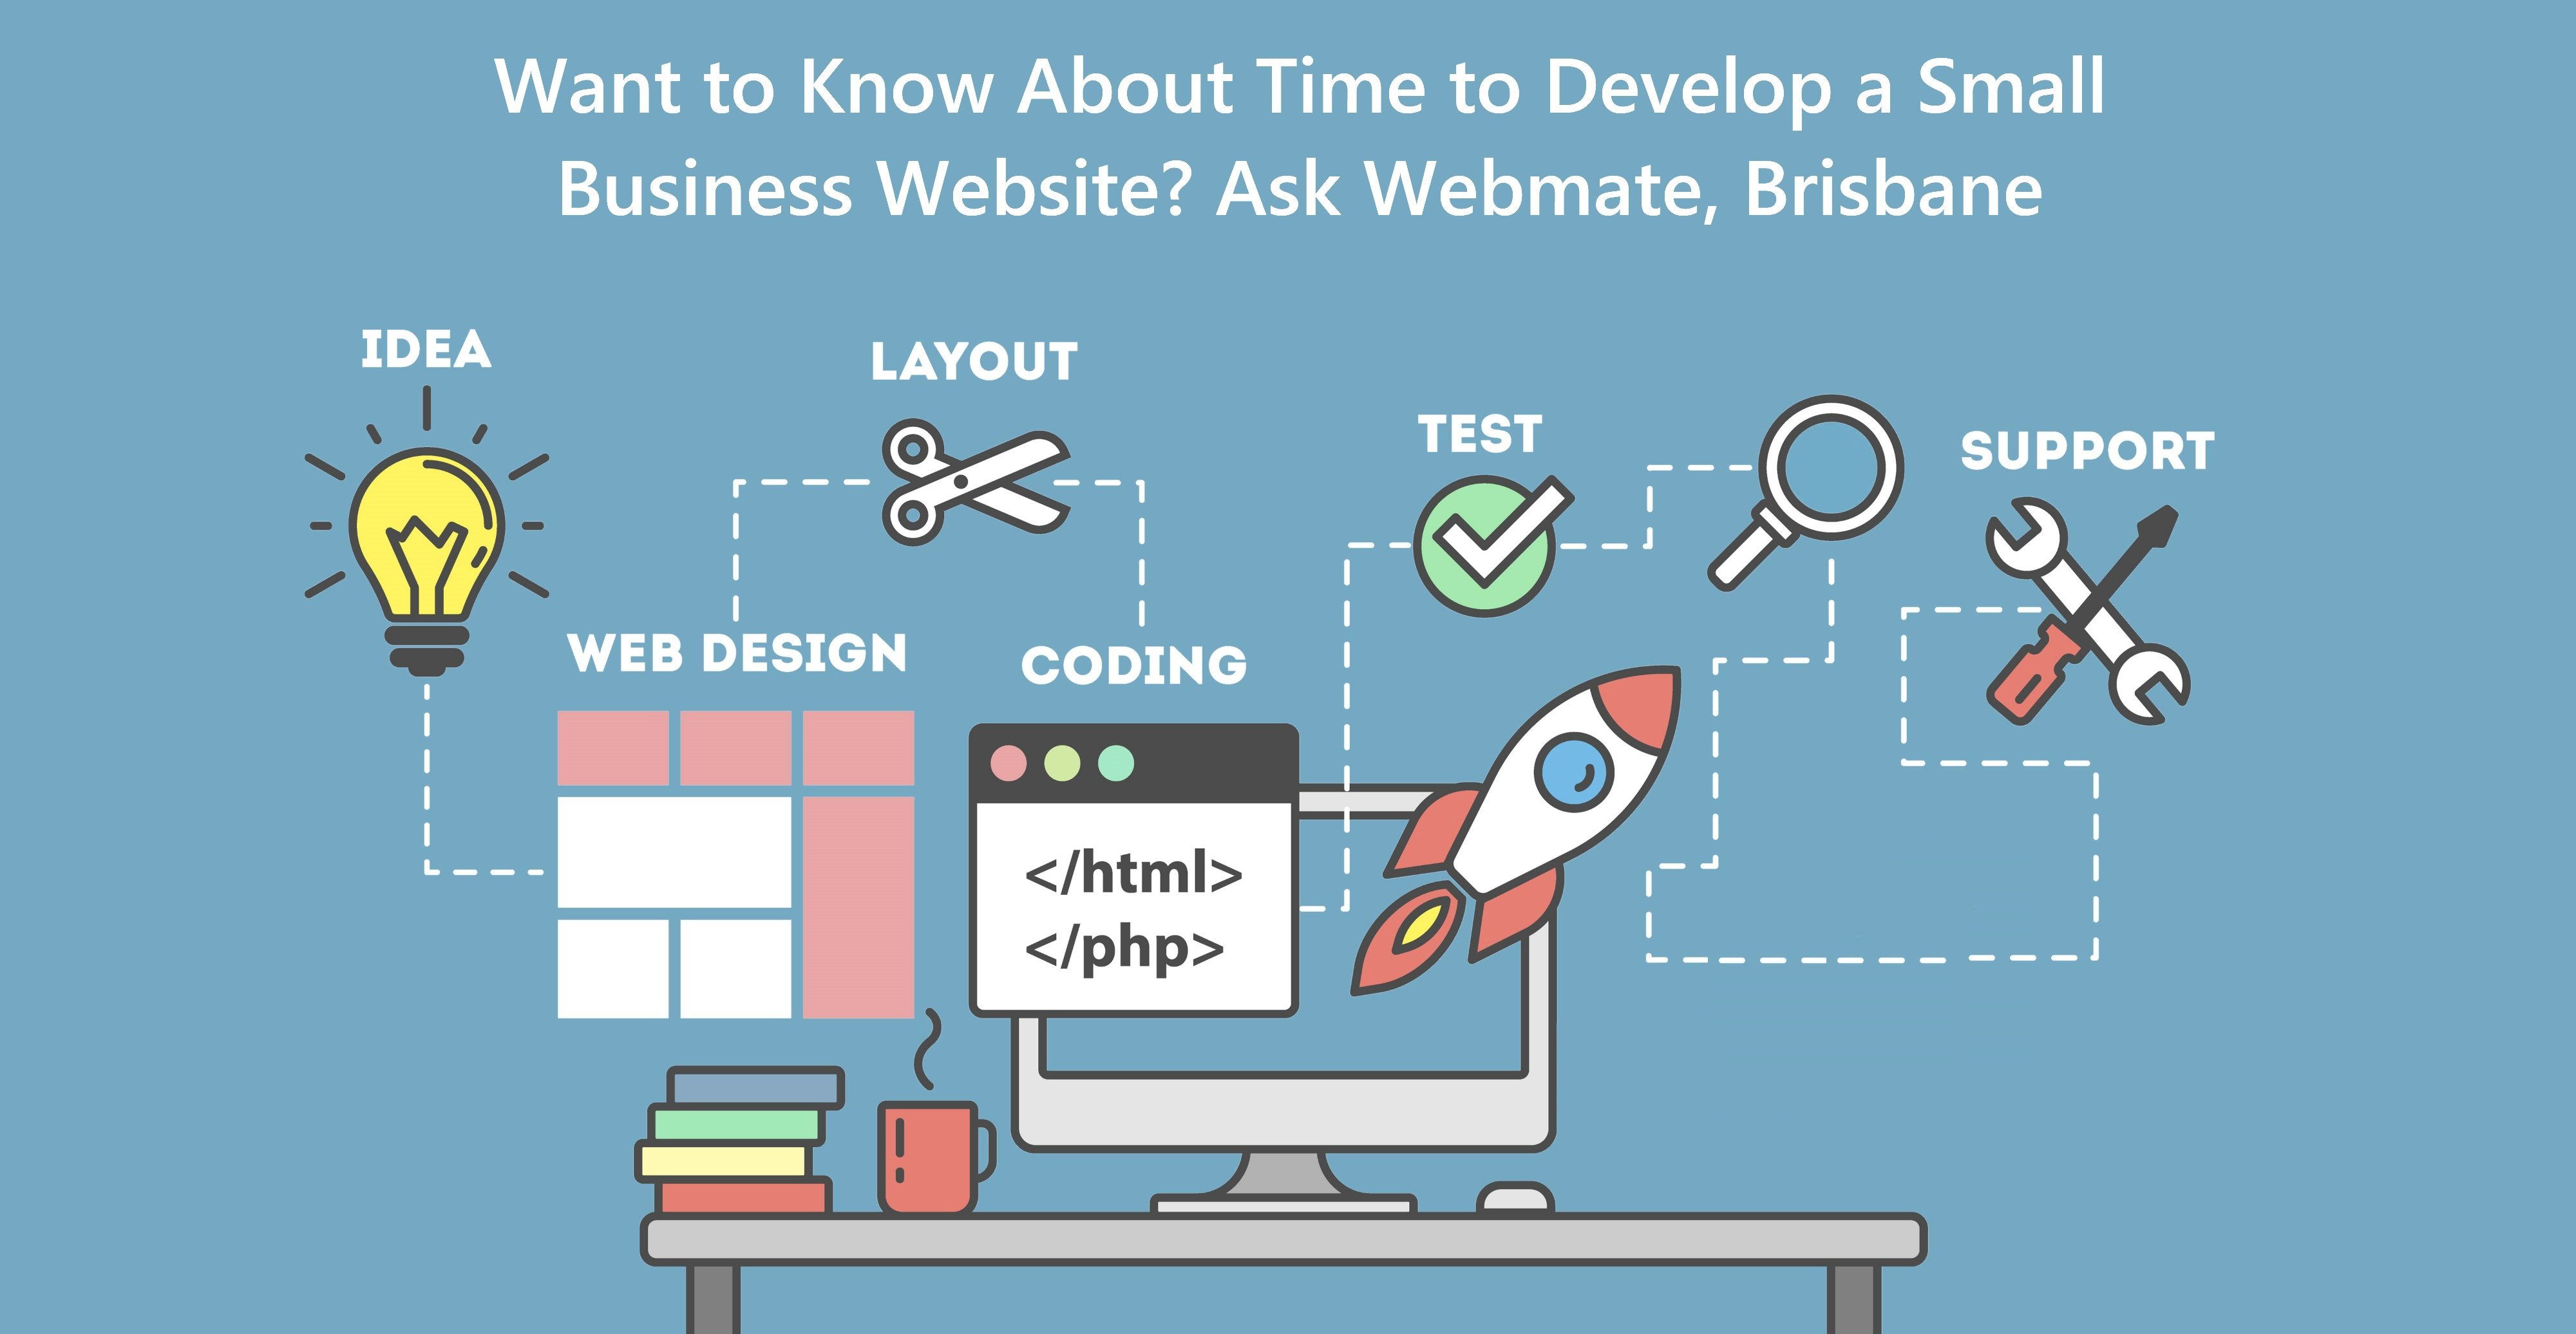 Want to Know About Time to Develop a Small Business Website? Ask Webmate, Brisbane